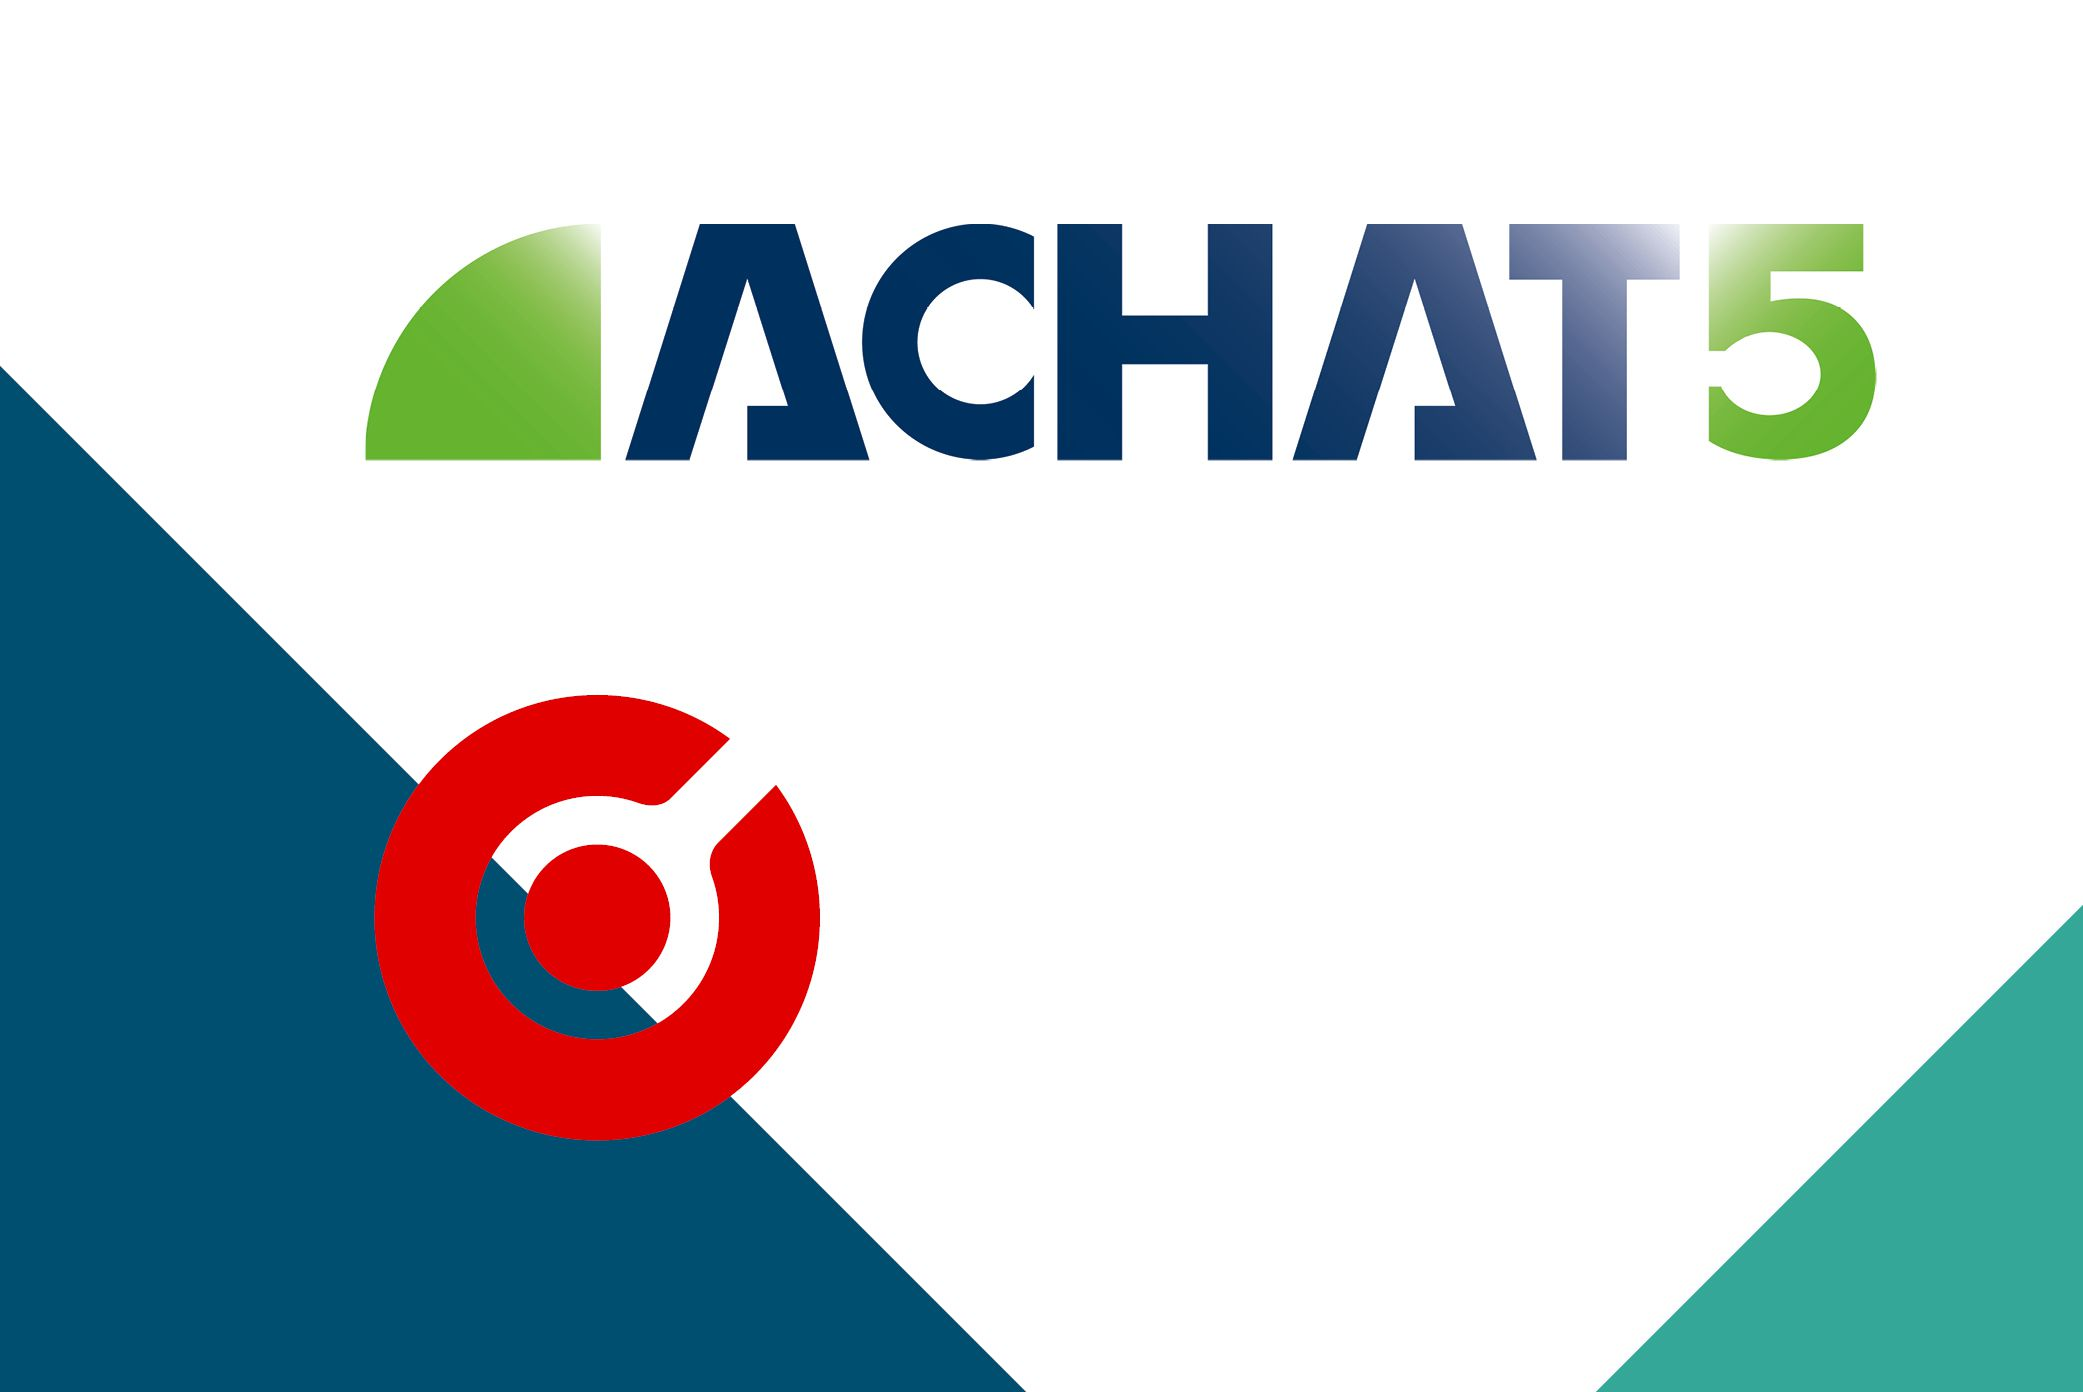 Meet ACHAT5 board handling conveyors at Productronica 2019